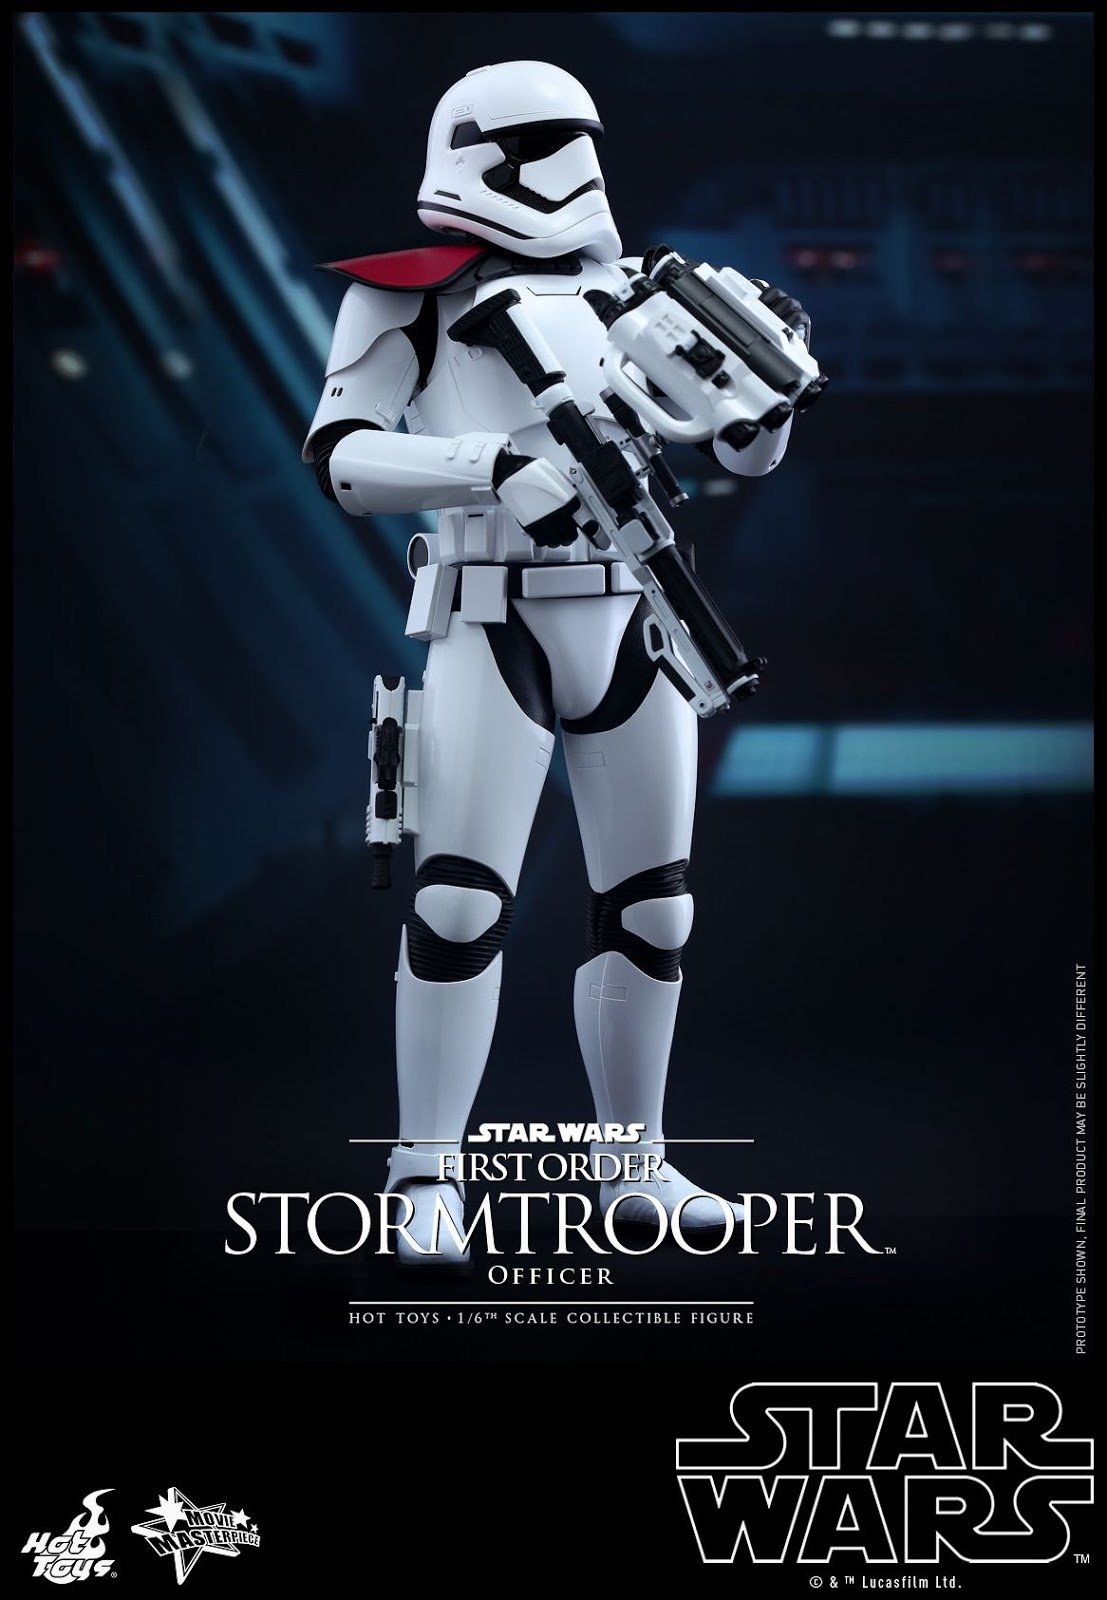 Hot Toys The Force Awakens First Order STORMTROOPER OFFICER & STAR WARS 12 Inch Figures Blog: Hot Toys The Force Awakens First ...